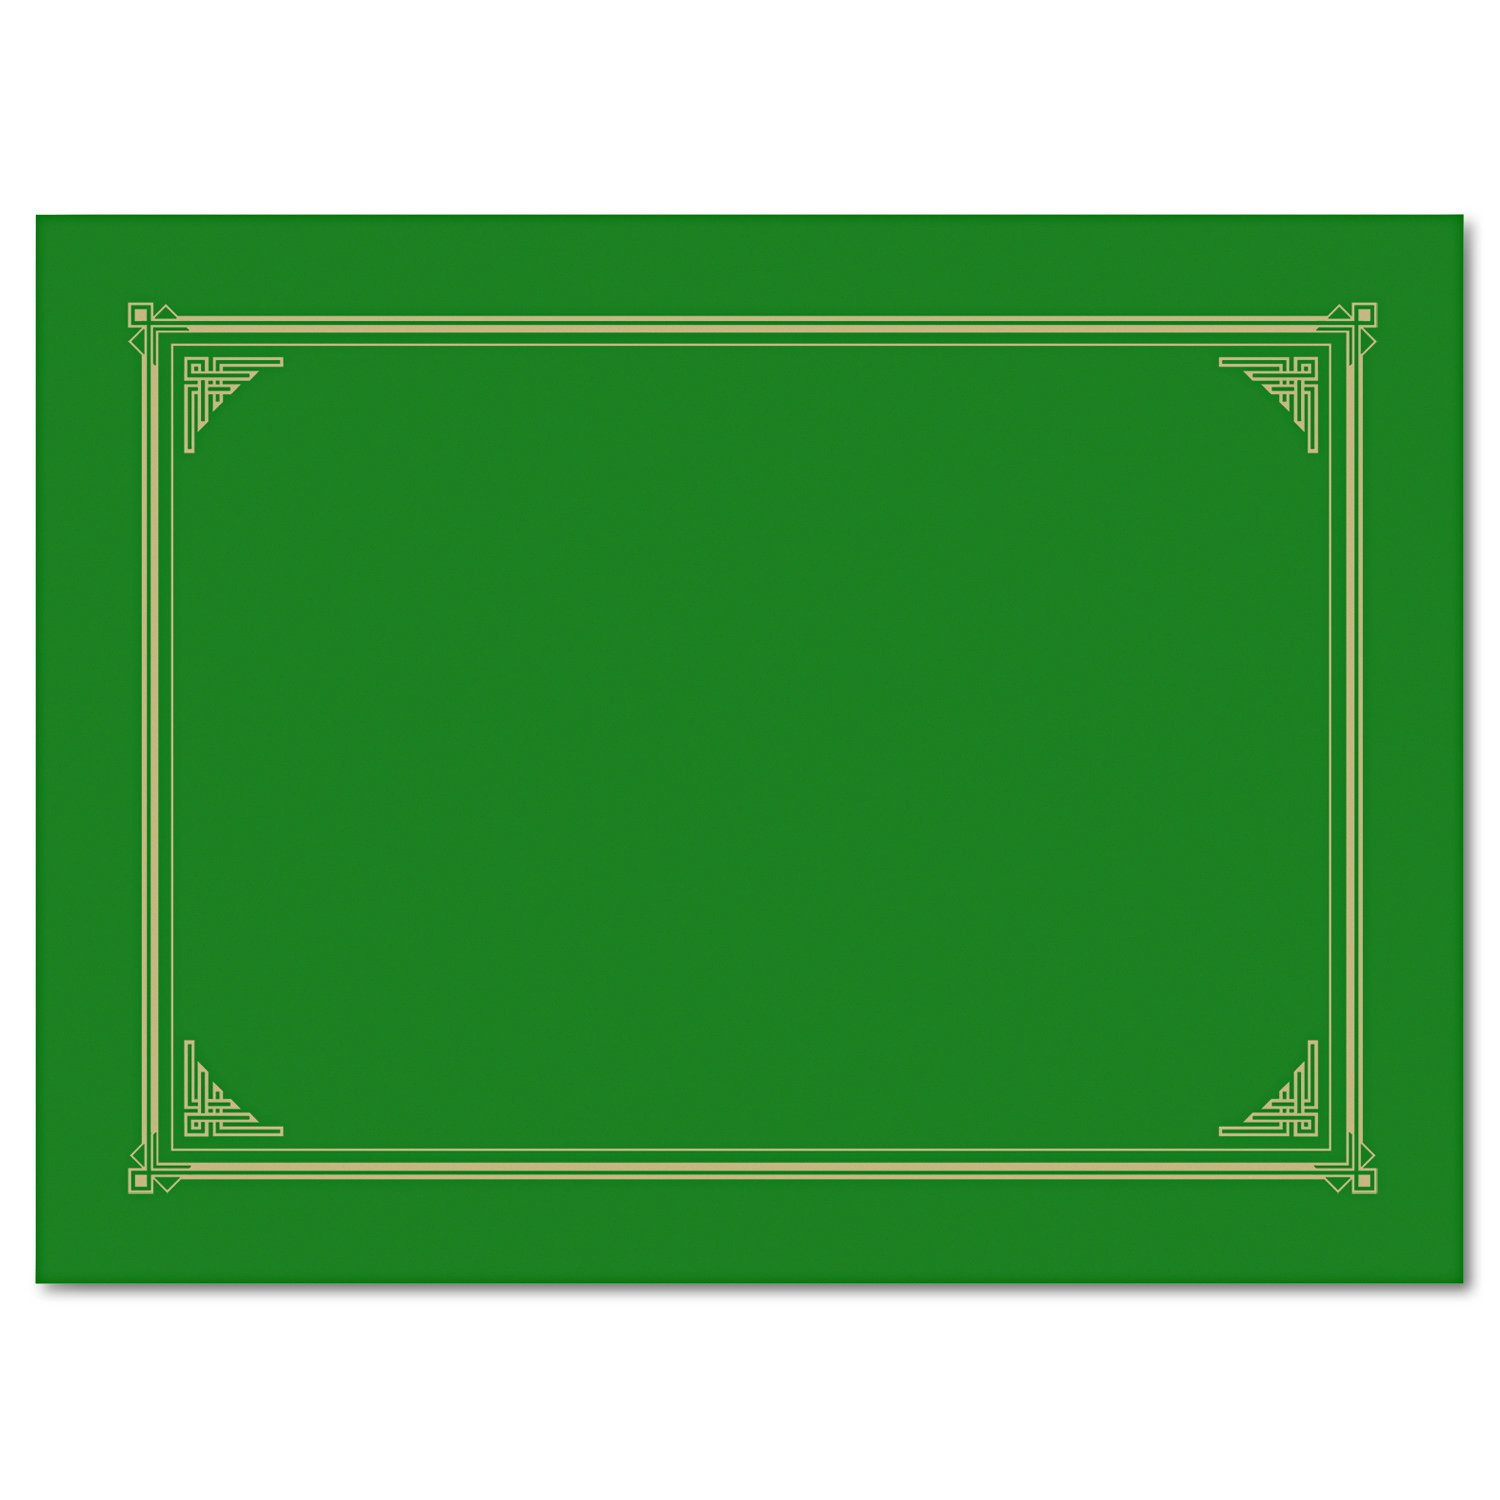 Geographics Linen Stock Document Cover, 9.75 x 12.5 Inches, Green (47399)